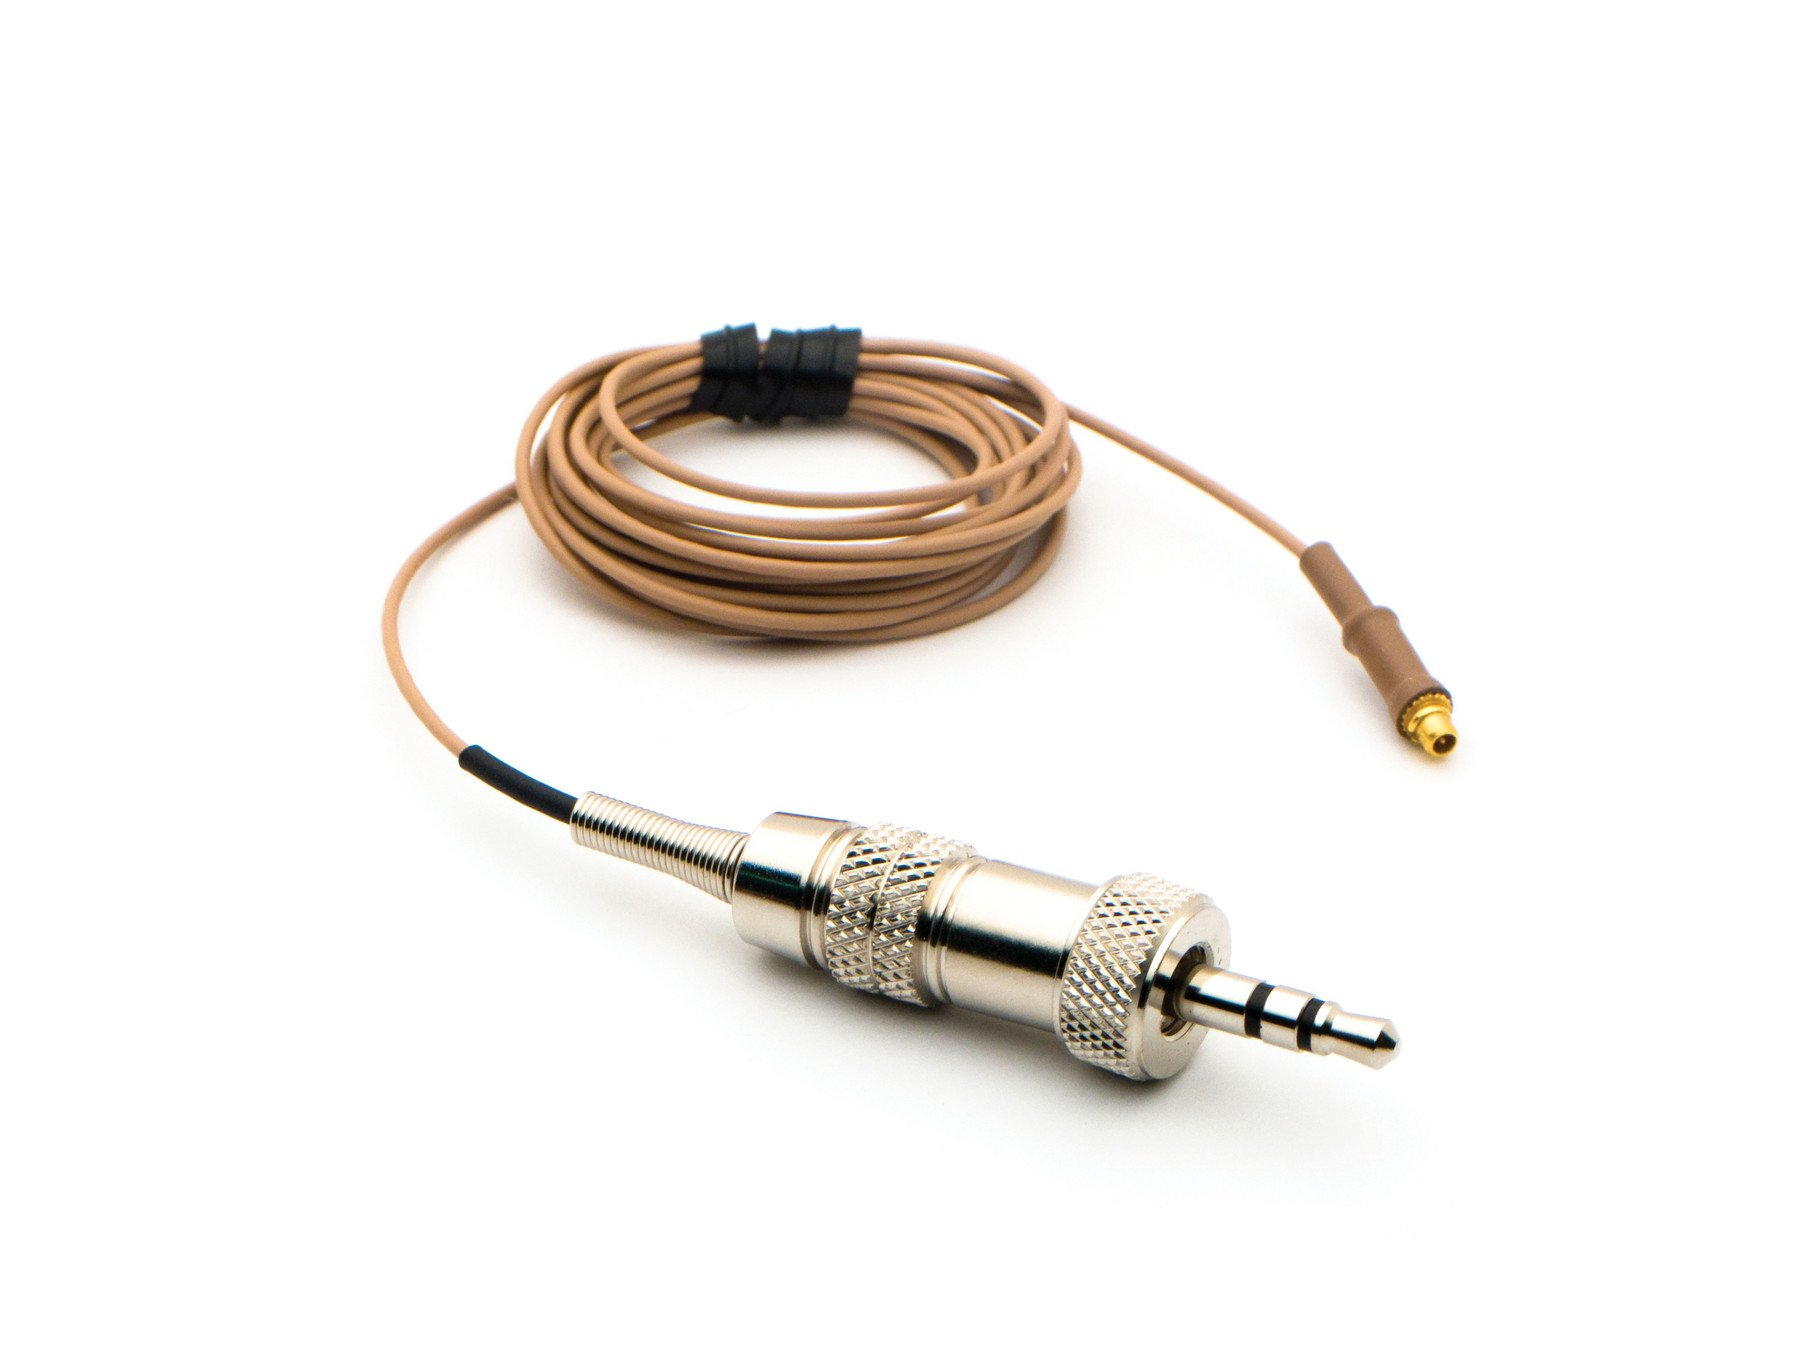 Countryman IsoMax E6 Replacement Cable for Sennheiser - Tan, 1mm Cable by Countryman